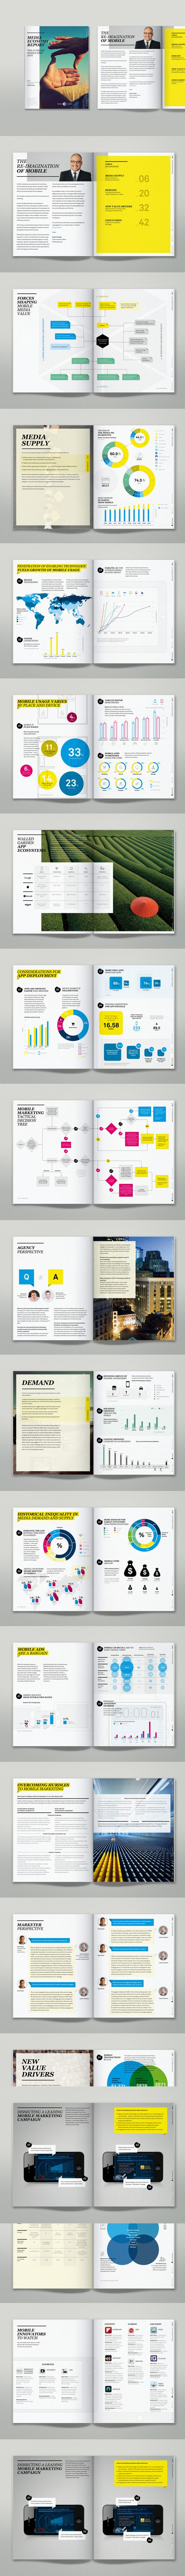 MagnaGlobal Media Economy Report Vol.2 By Martin Oberhäuser   Beautiful Work!